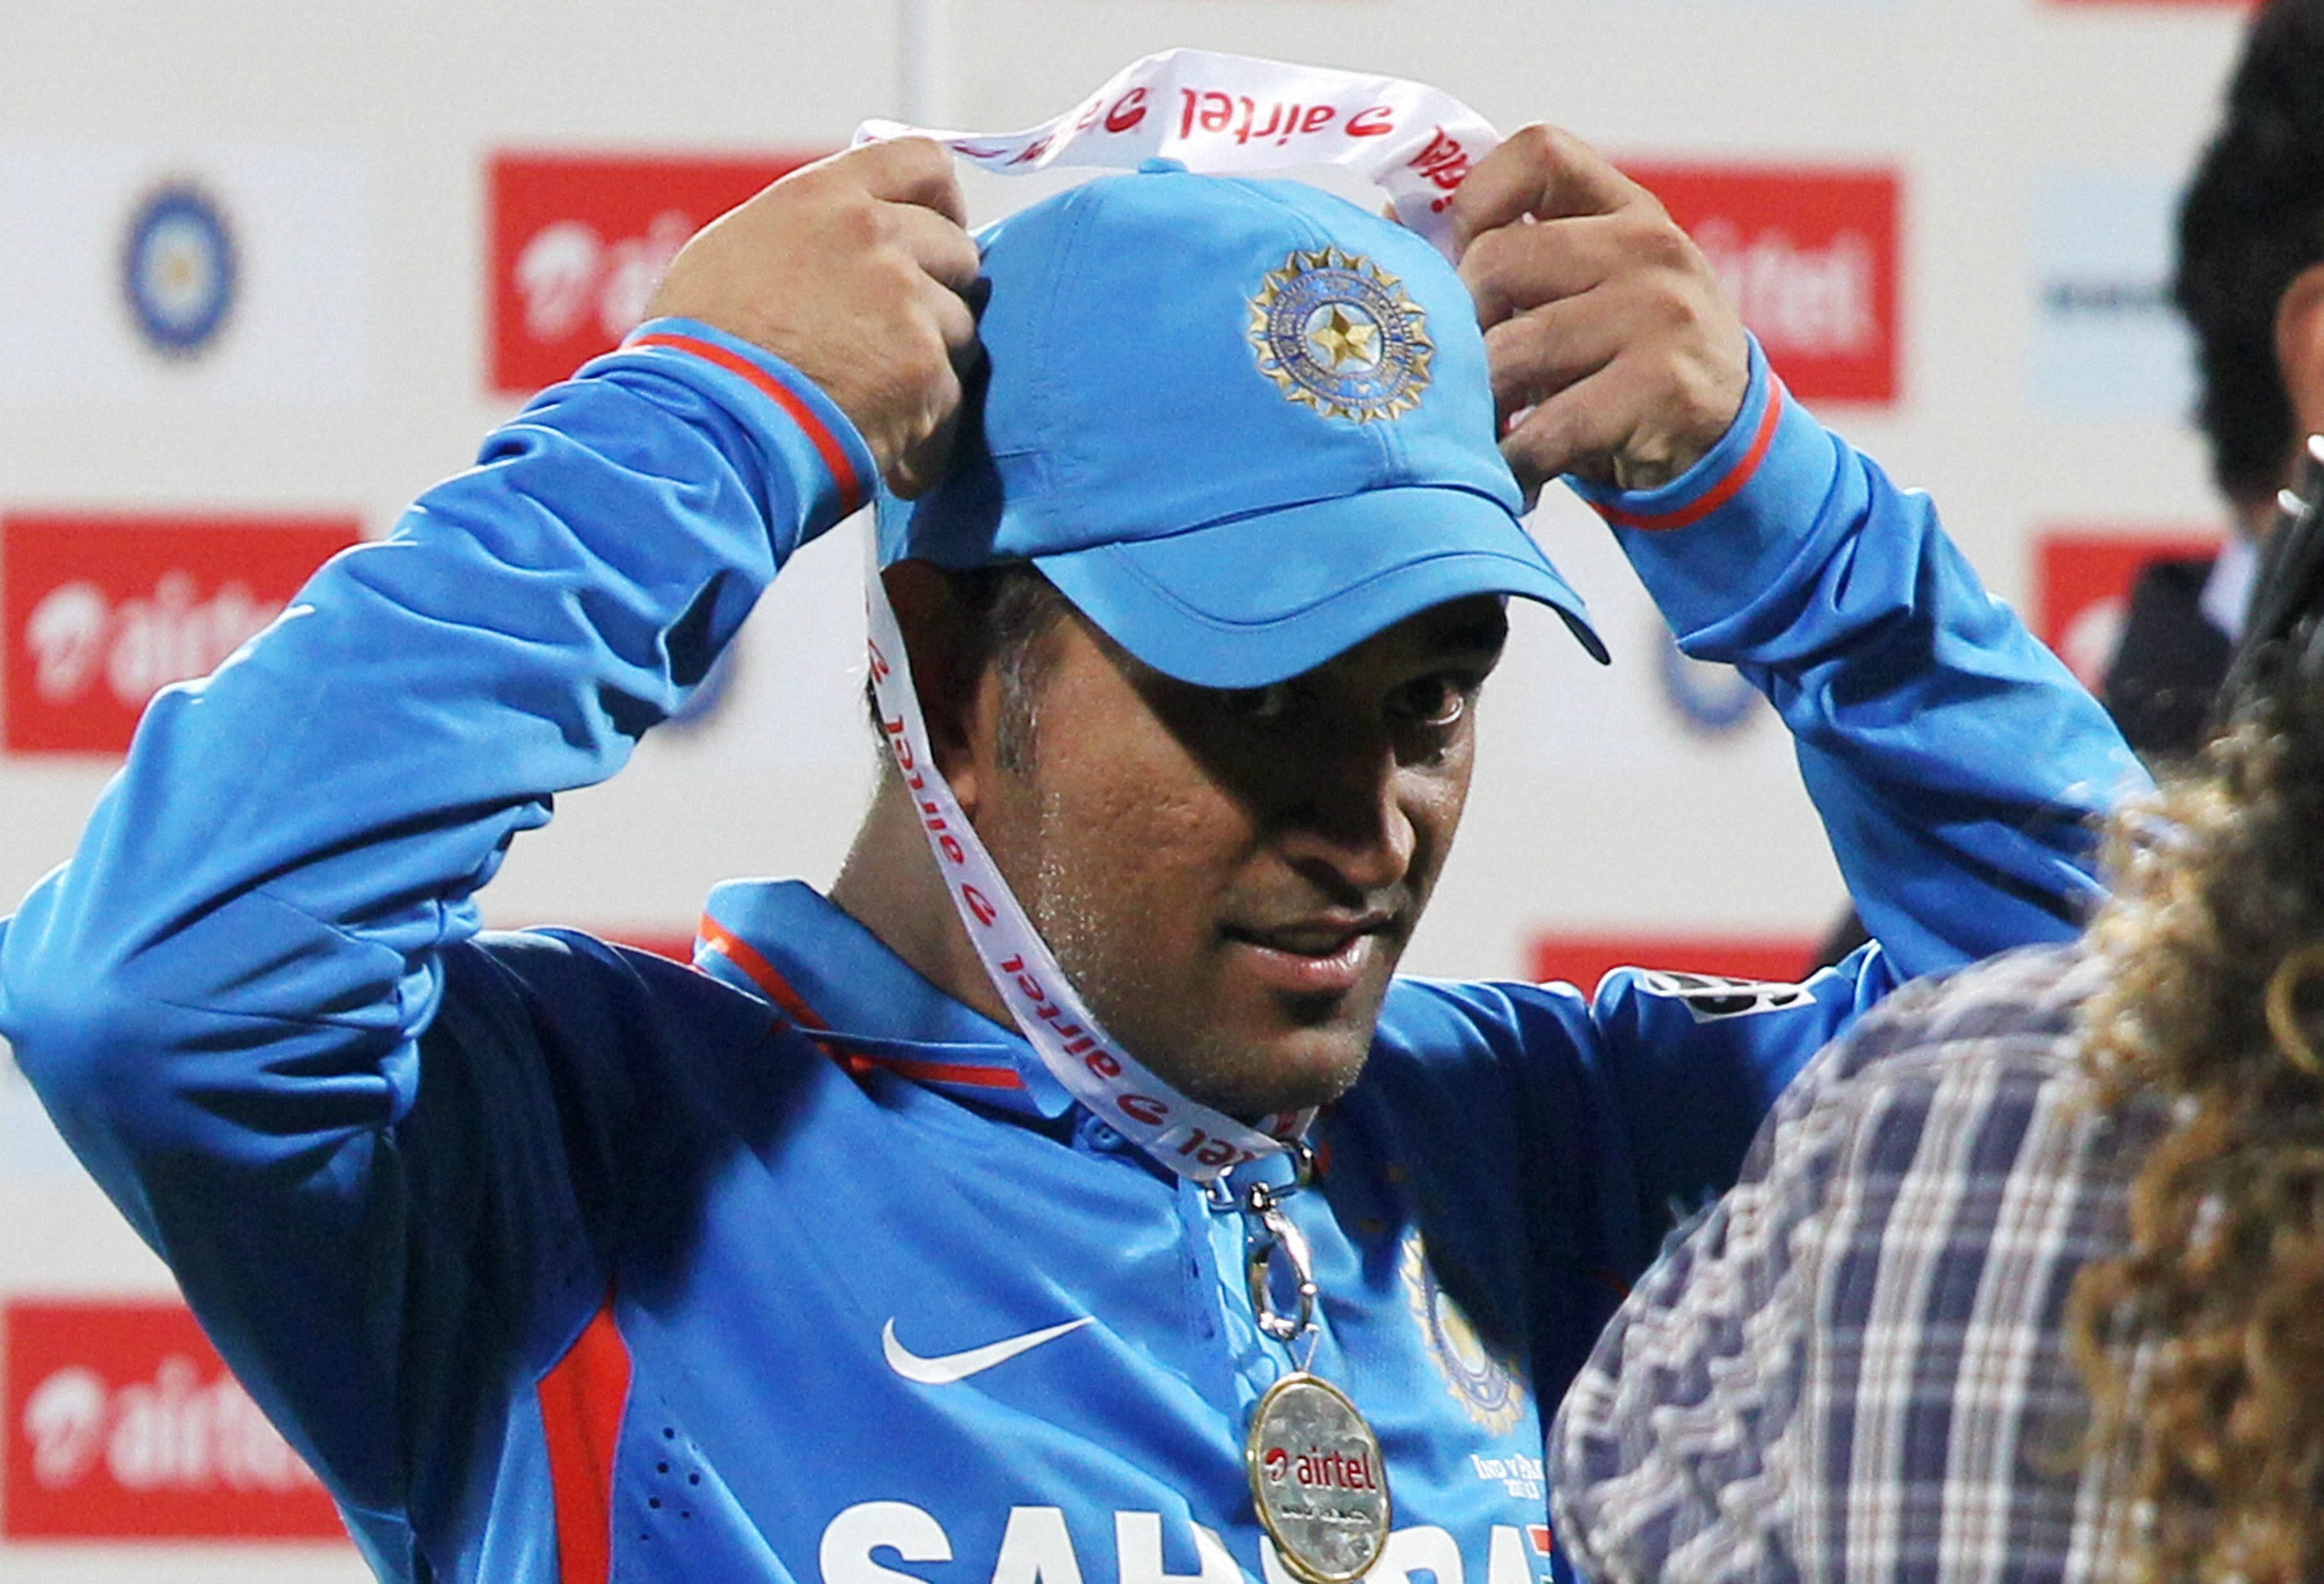 Thala Dhoni Lovely Receiving Airtel Medal Still Background Mobile Free Desktop Images Hd